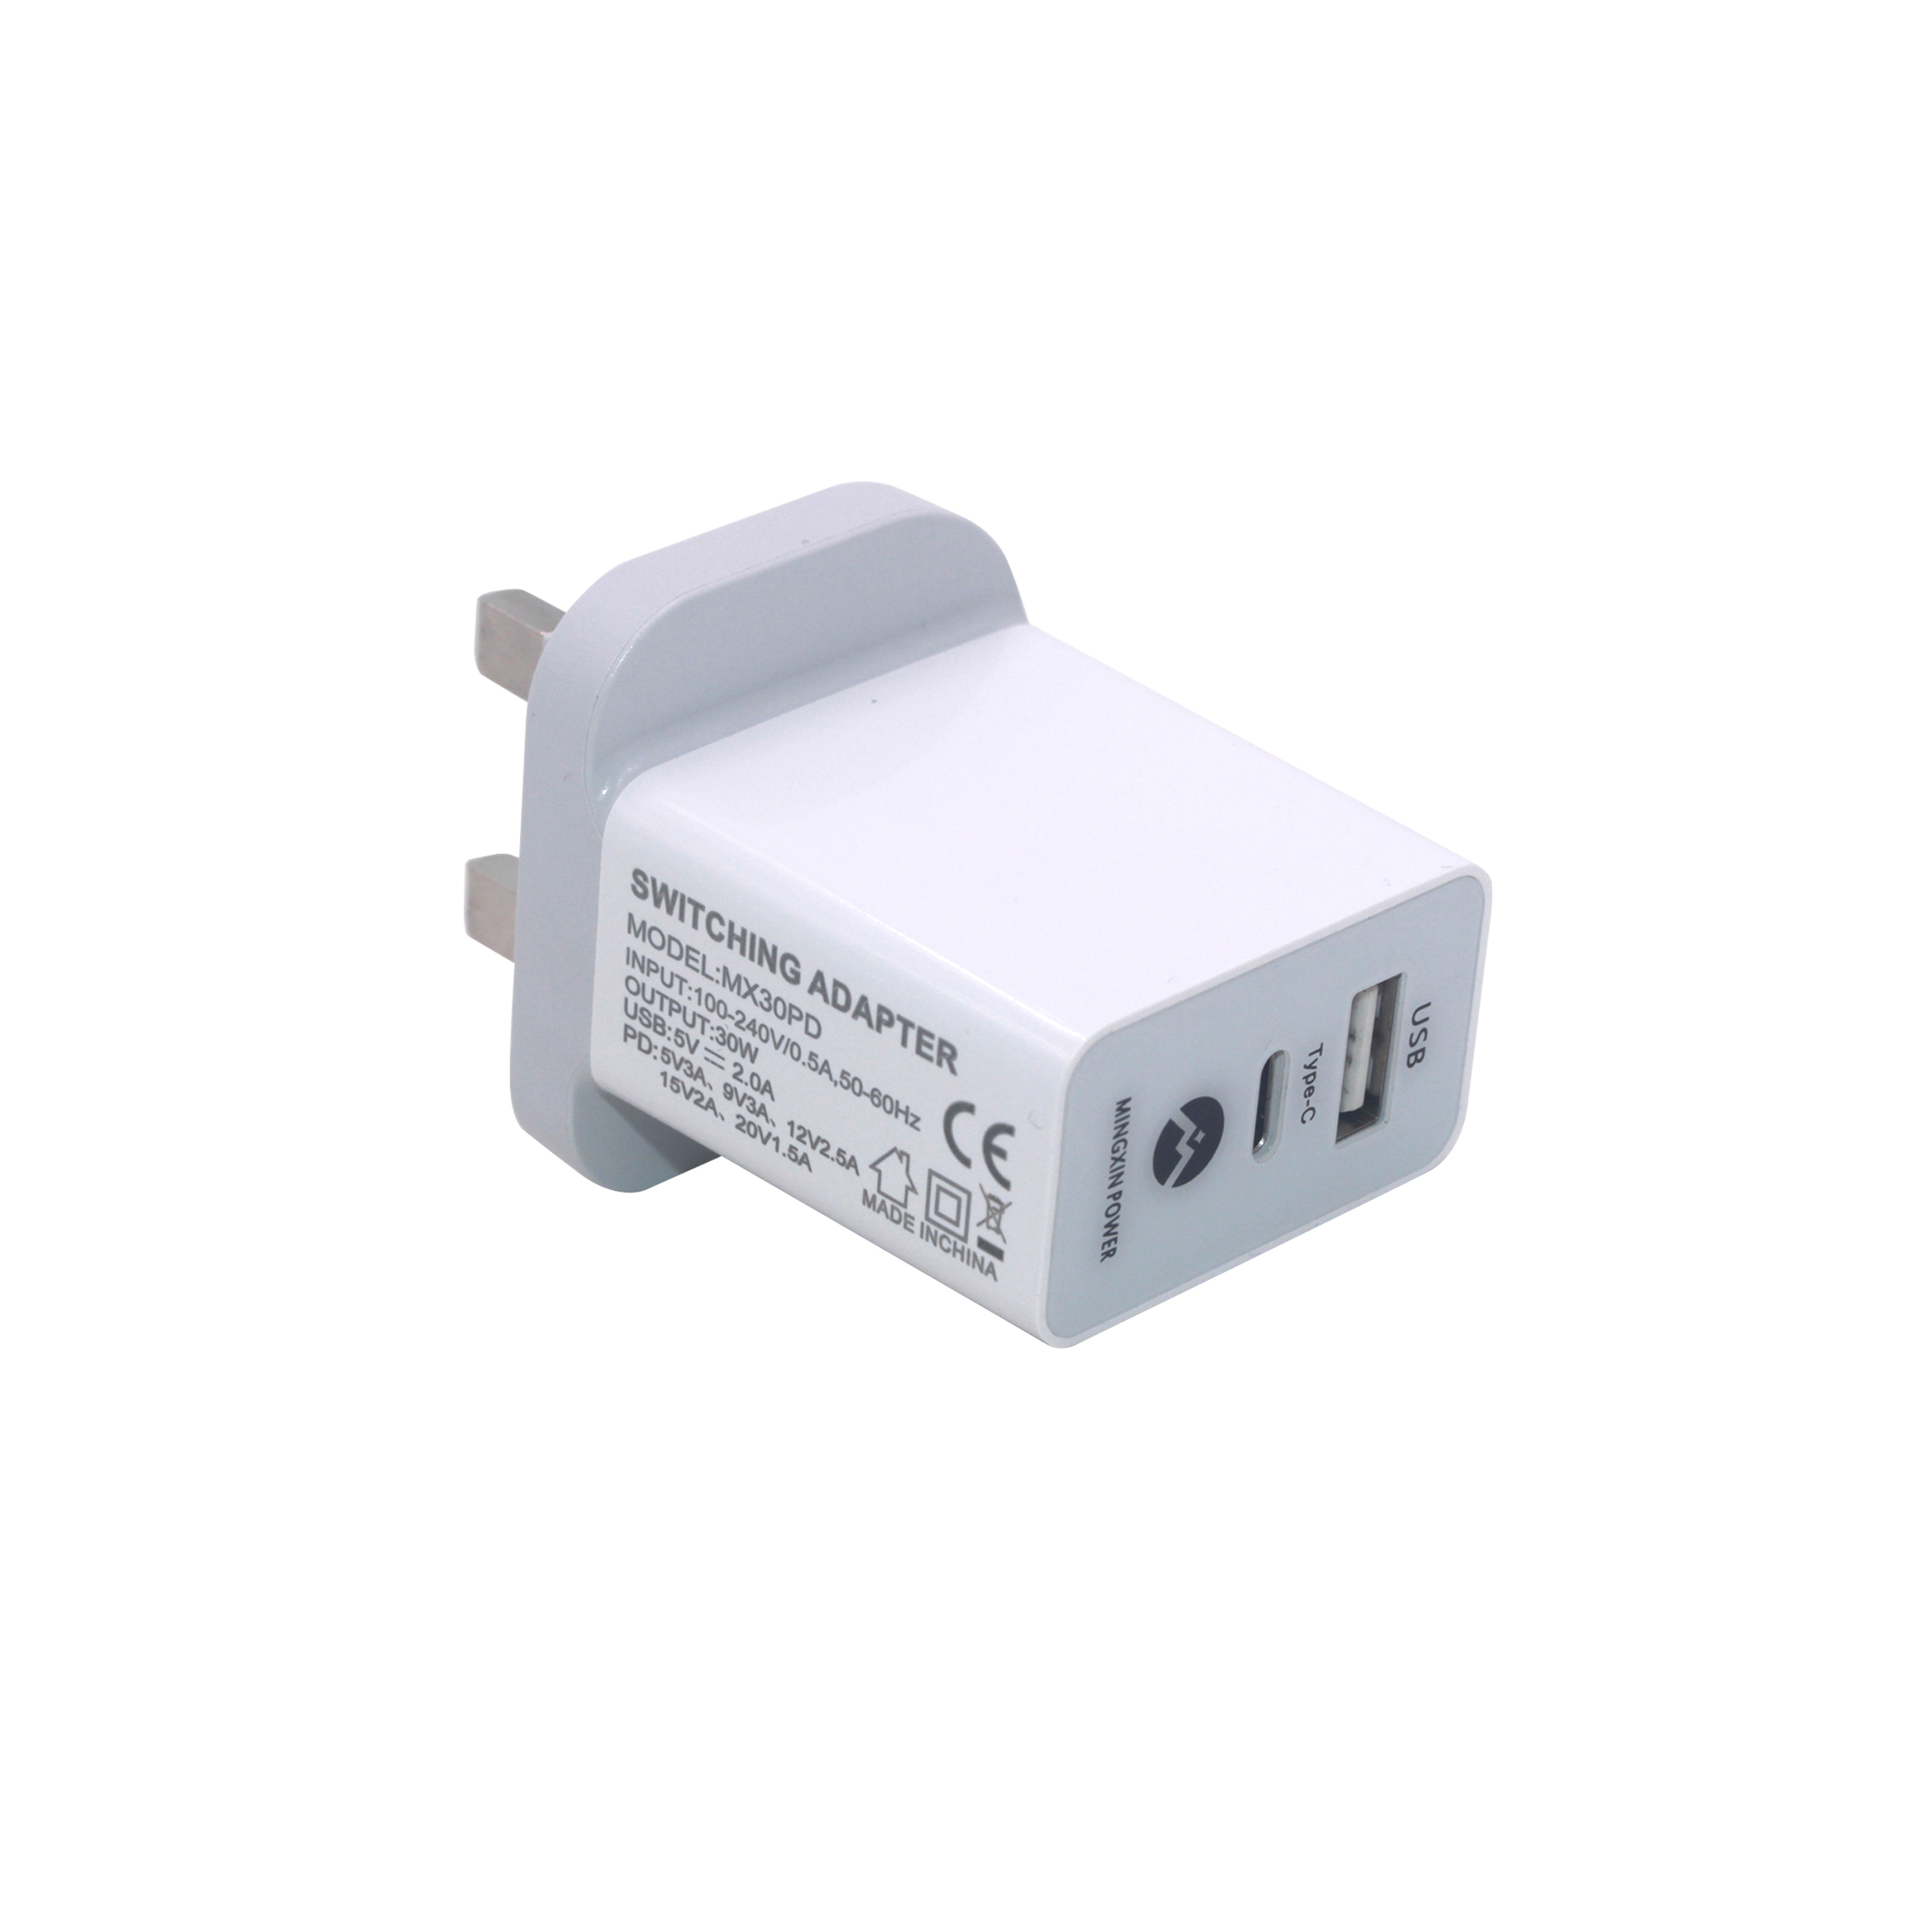 30w type-c PD charger with UK plug